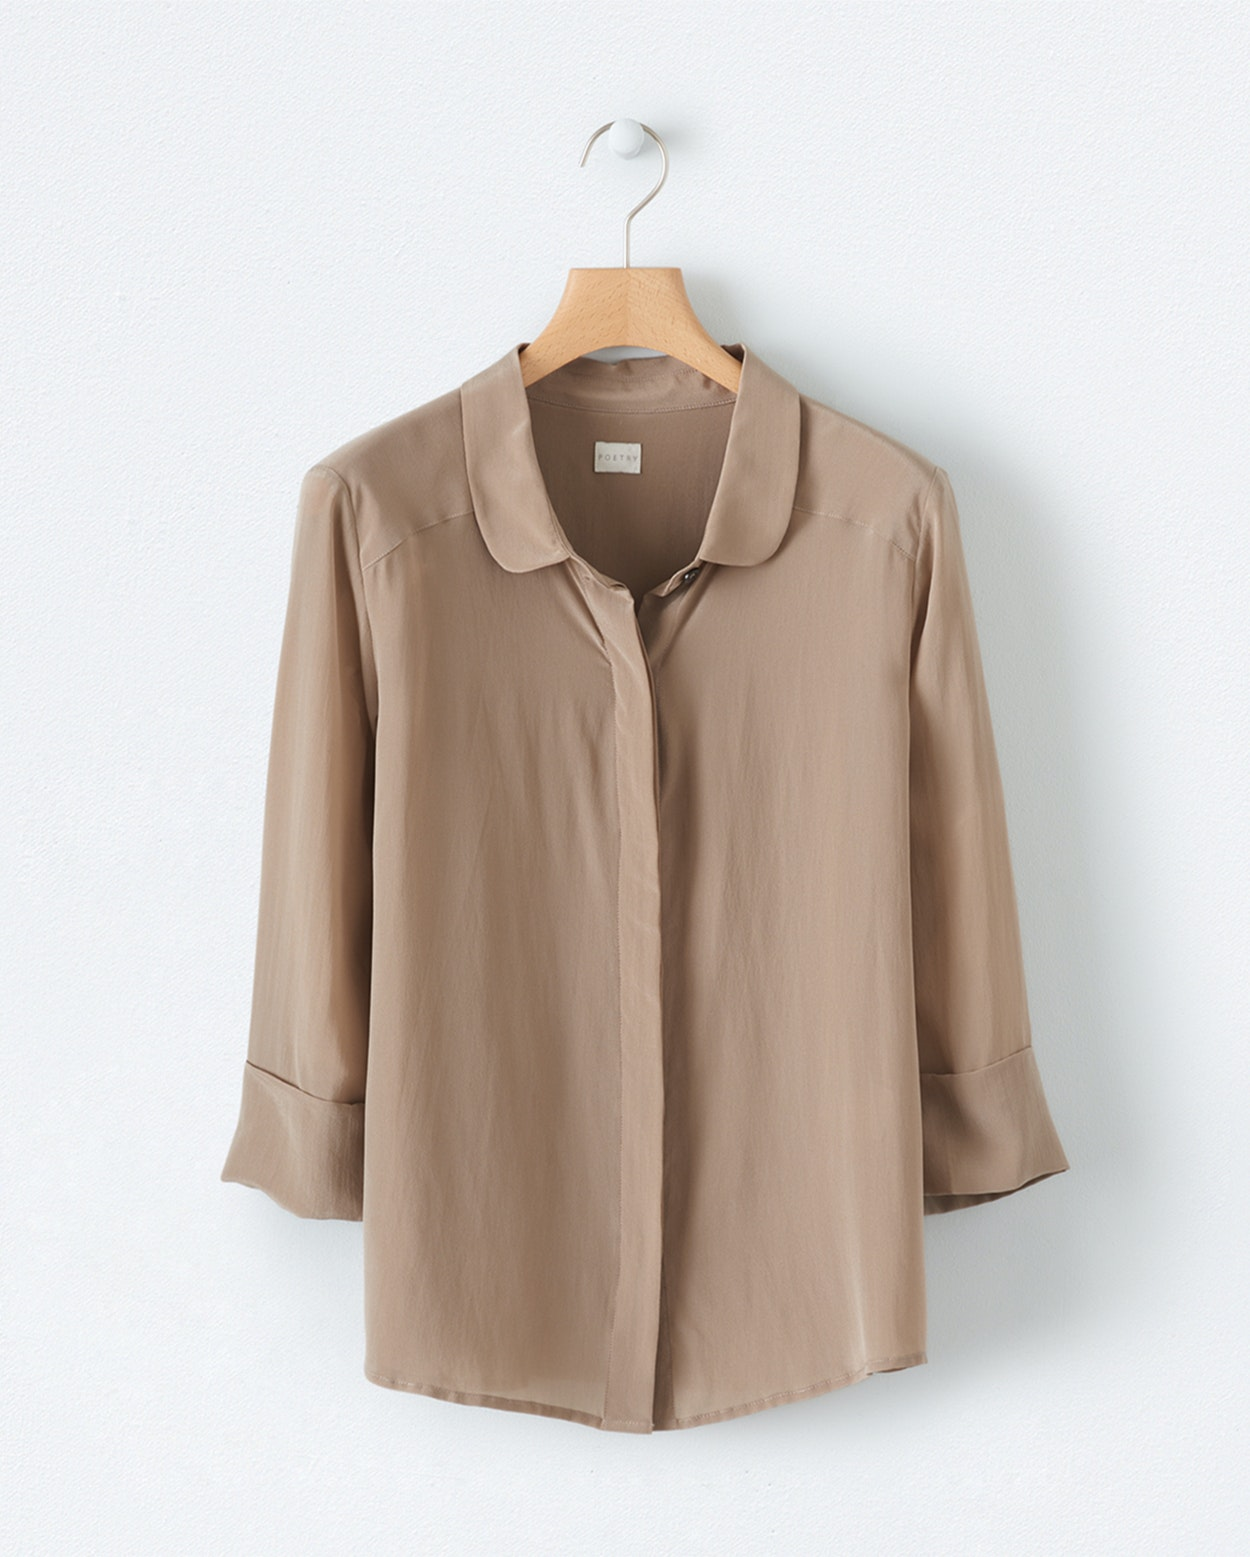 d9f27bea726 Product Image of Rounded-collar silk shirt ...